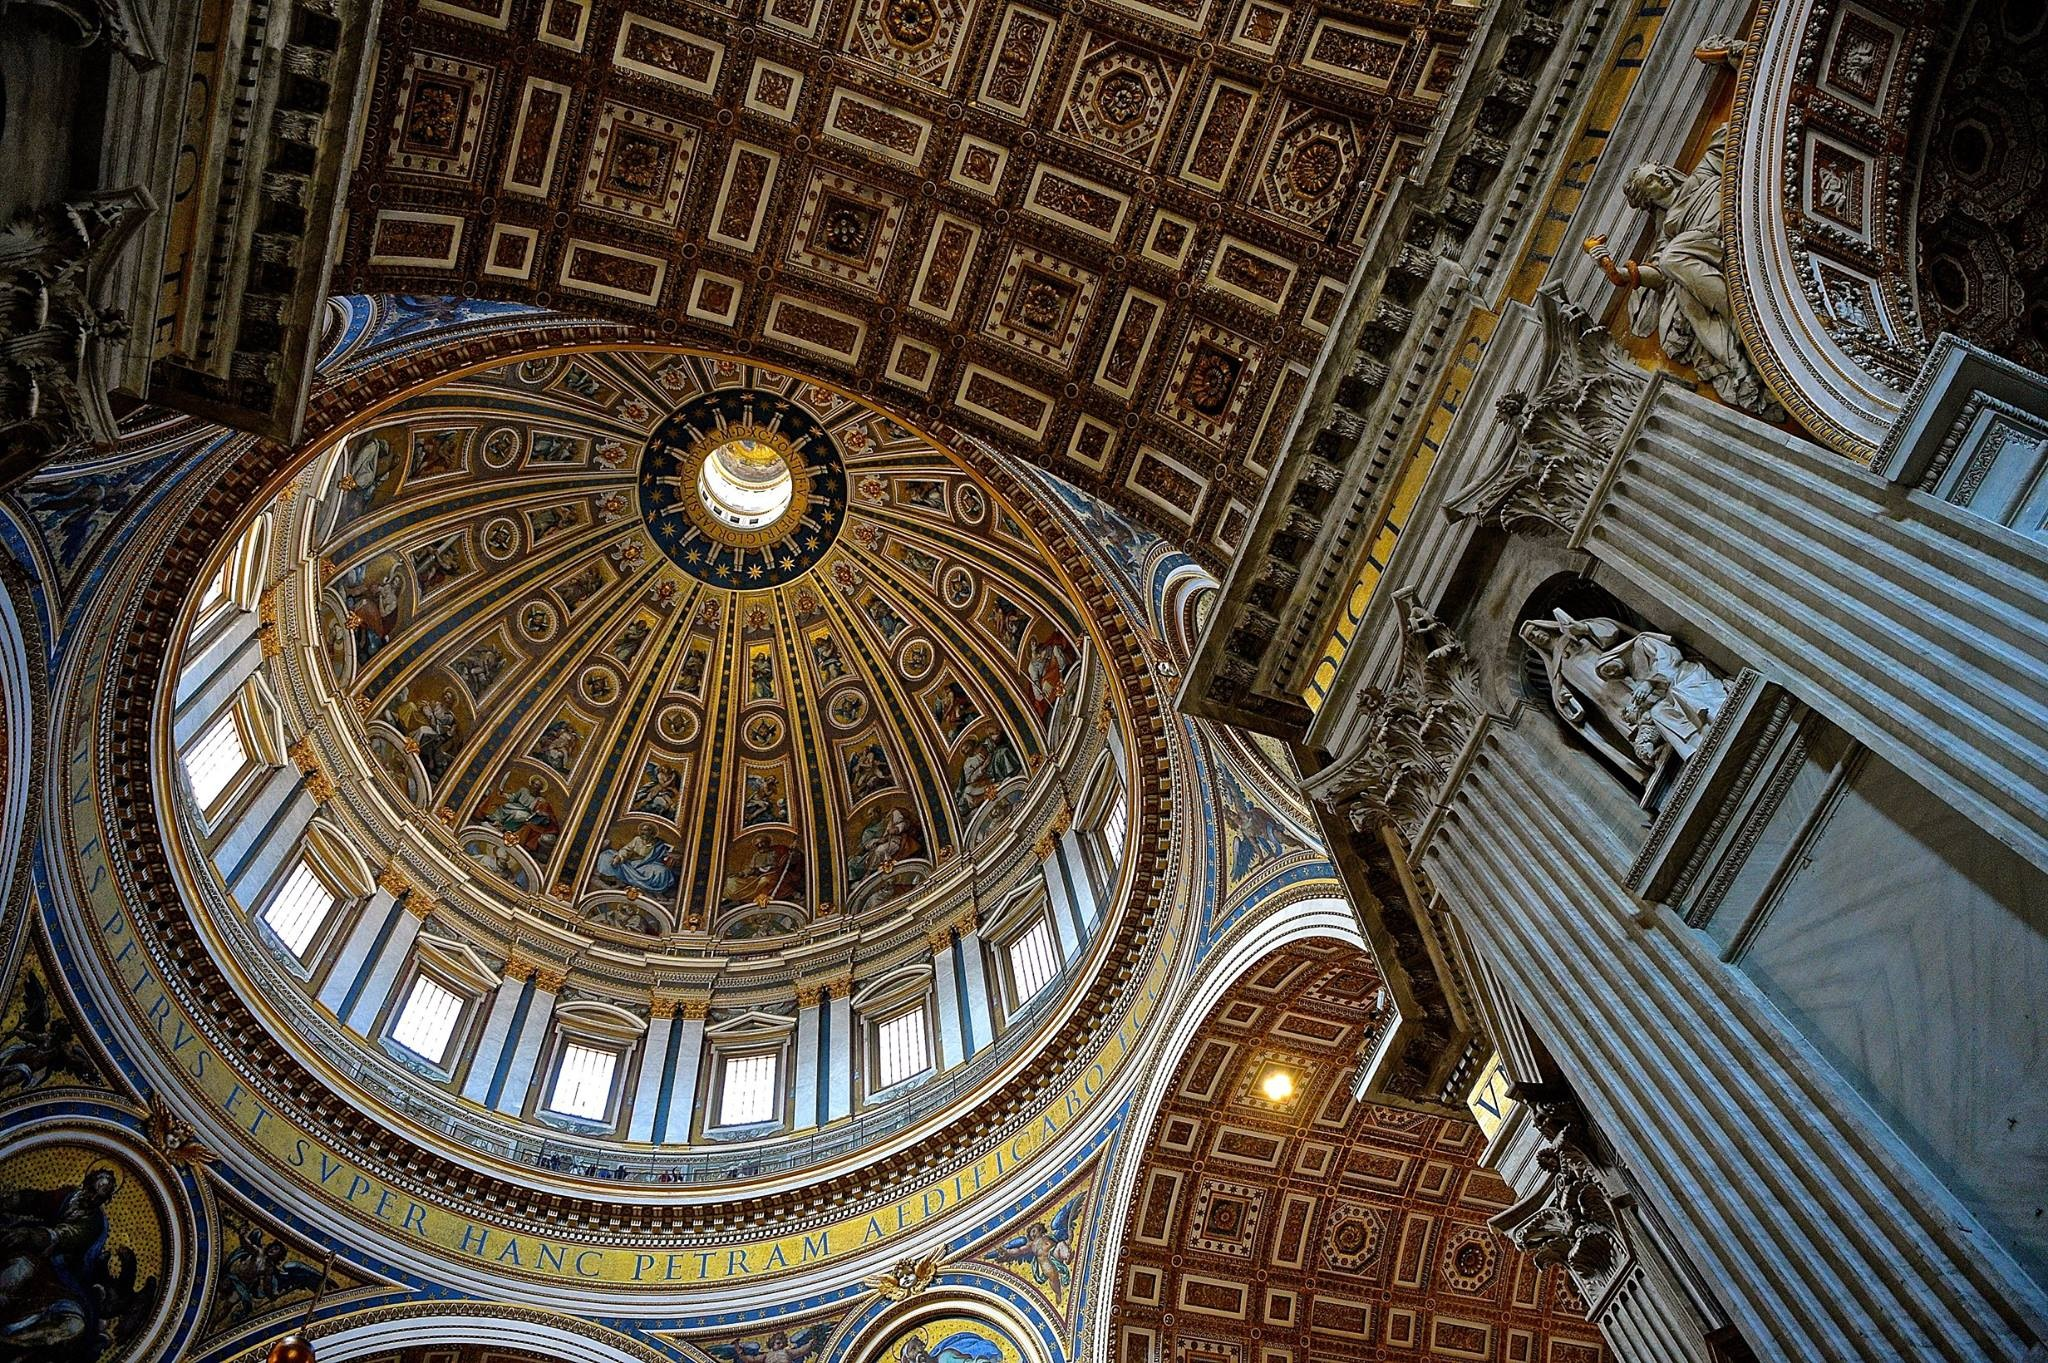 Vatican, St. Peters Rome 2018 by Robert Malin Young